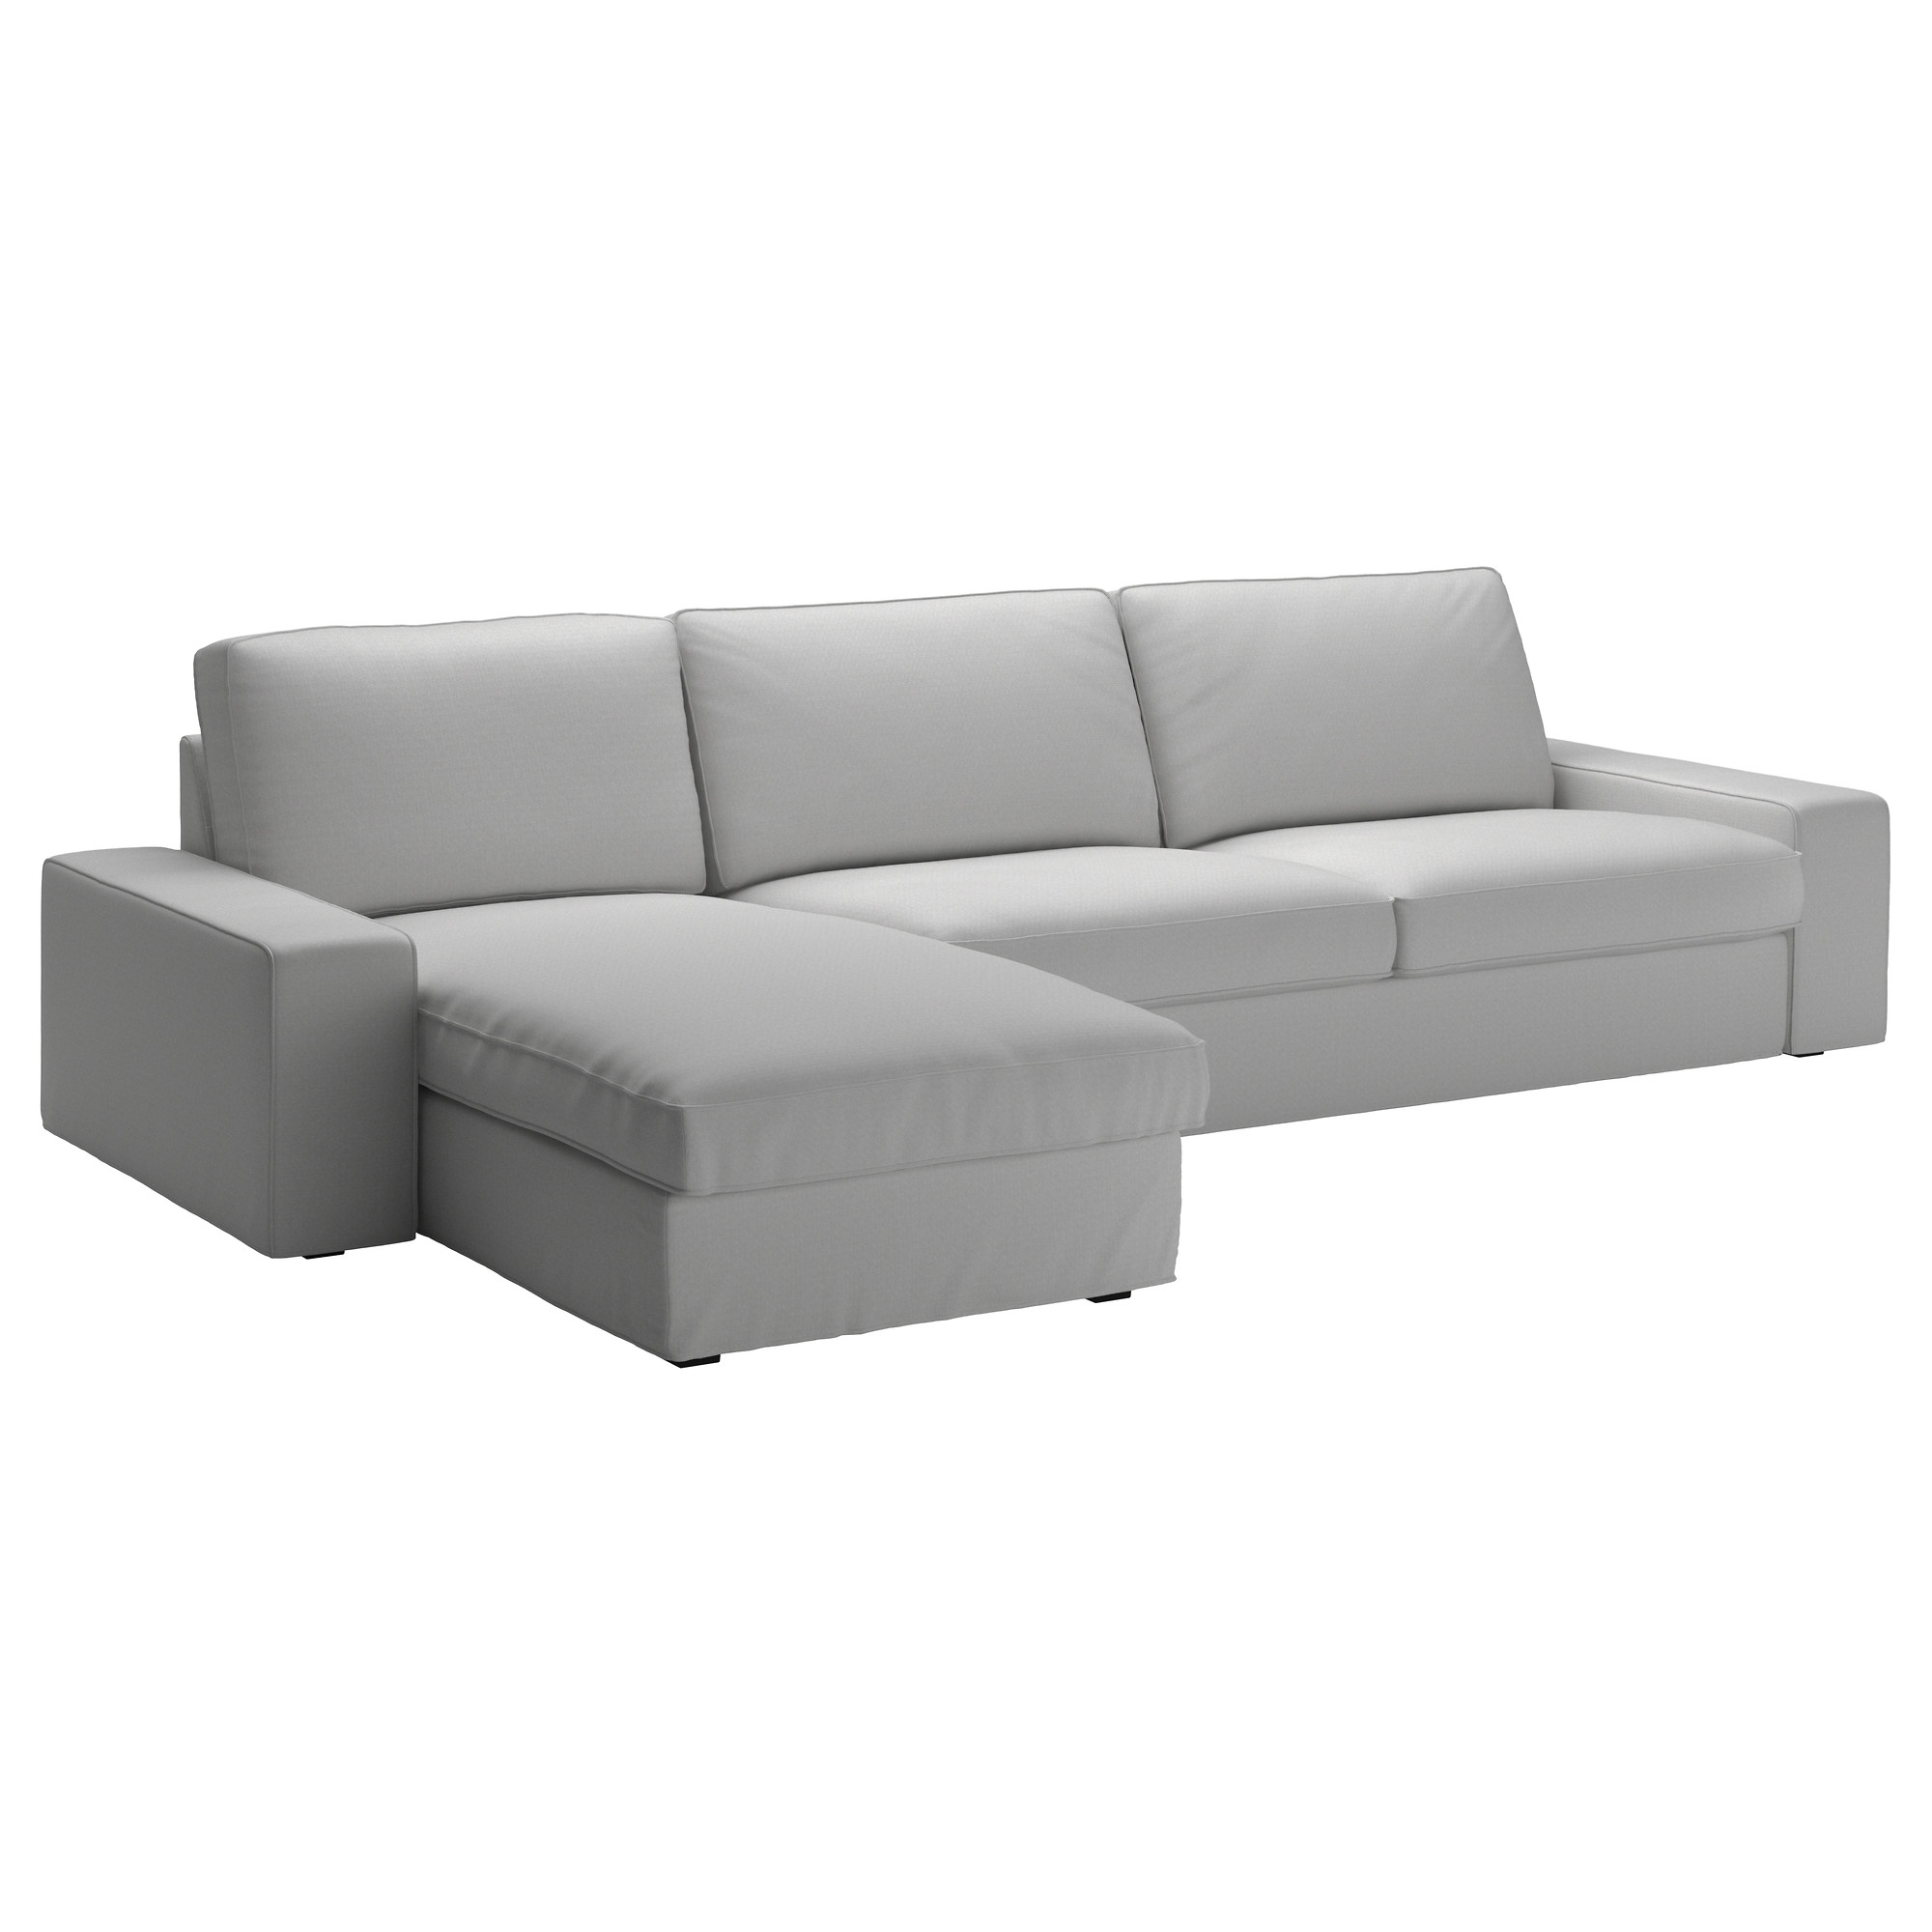 Sectional Sofas At Ikea In Well Known Kivik Sectional, 4 Seat – Orrsta Light Gray – Ikea (View 9 of 15)